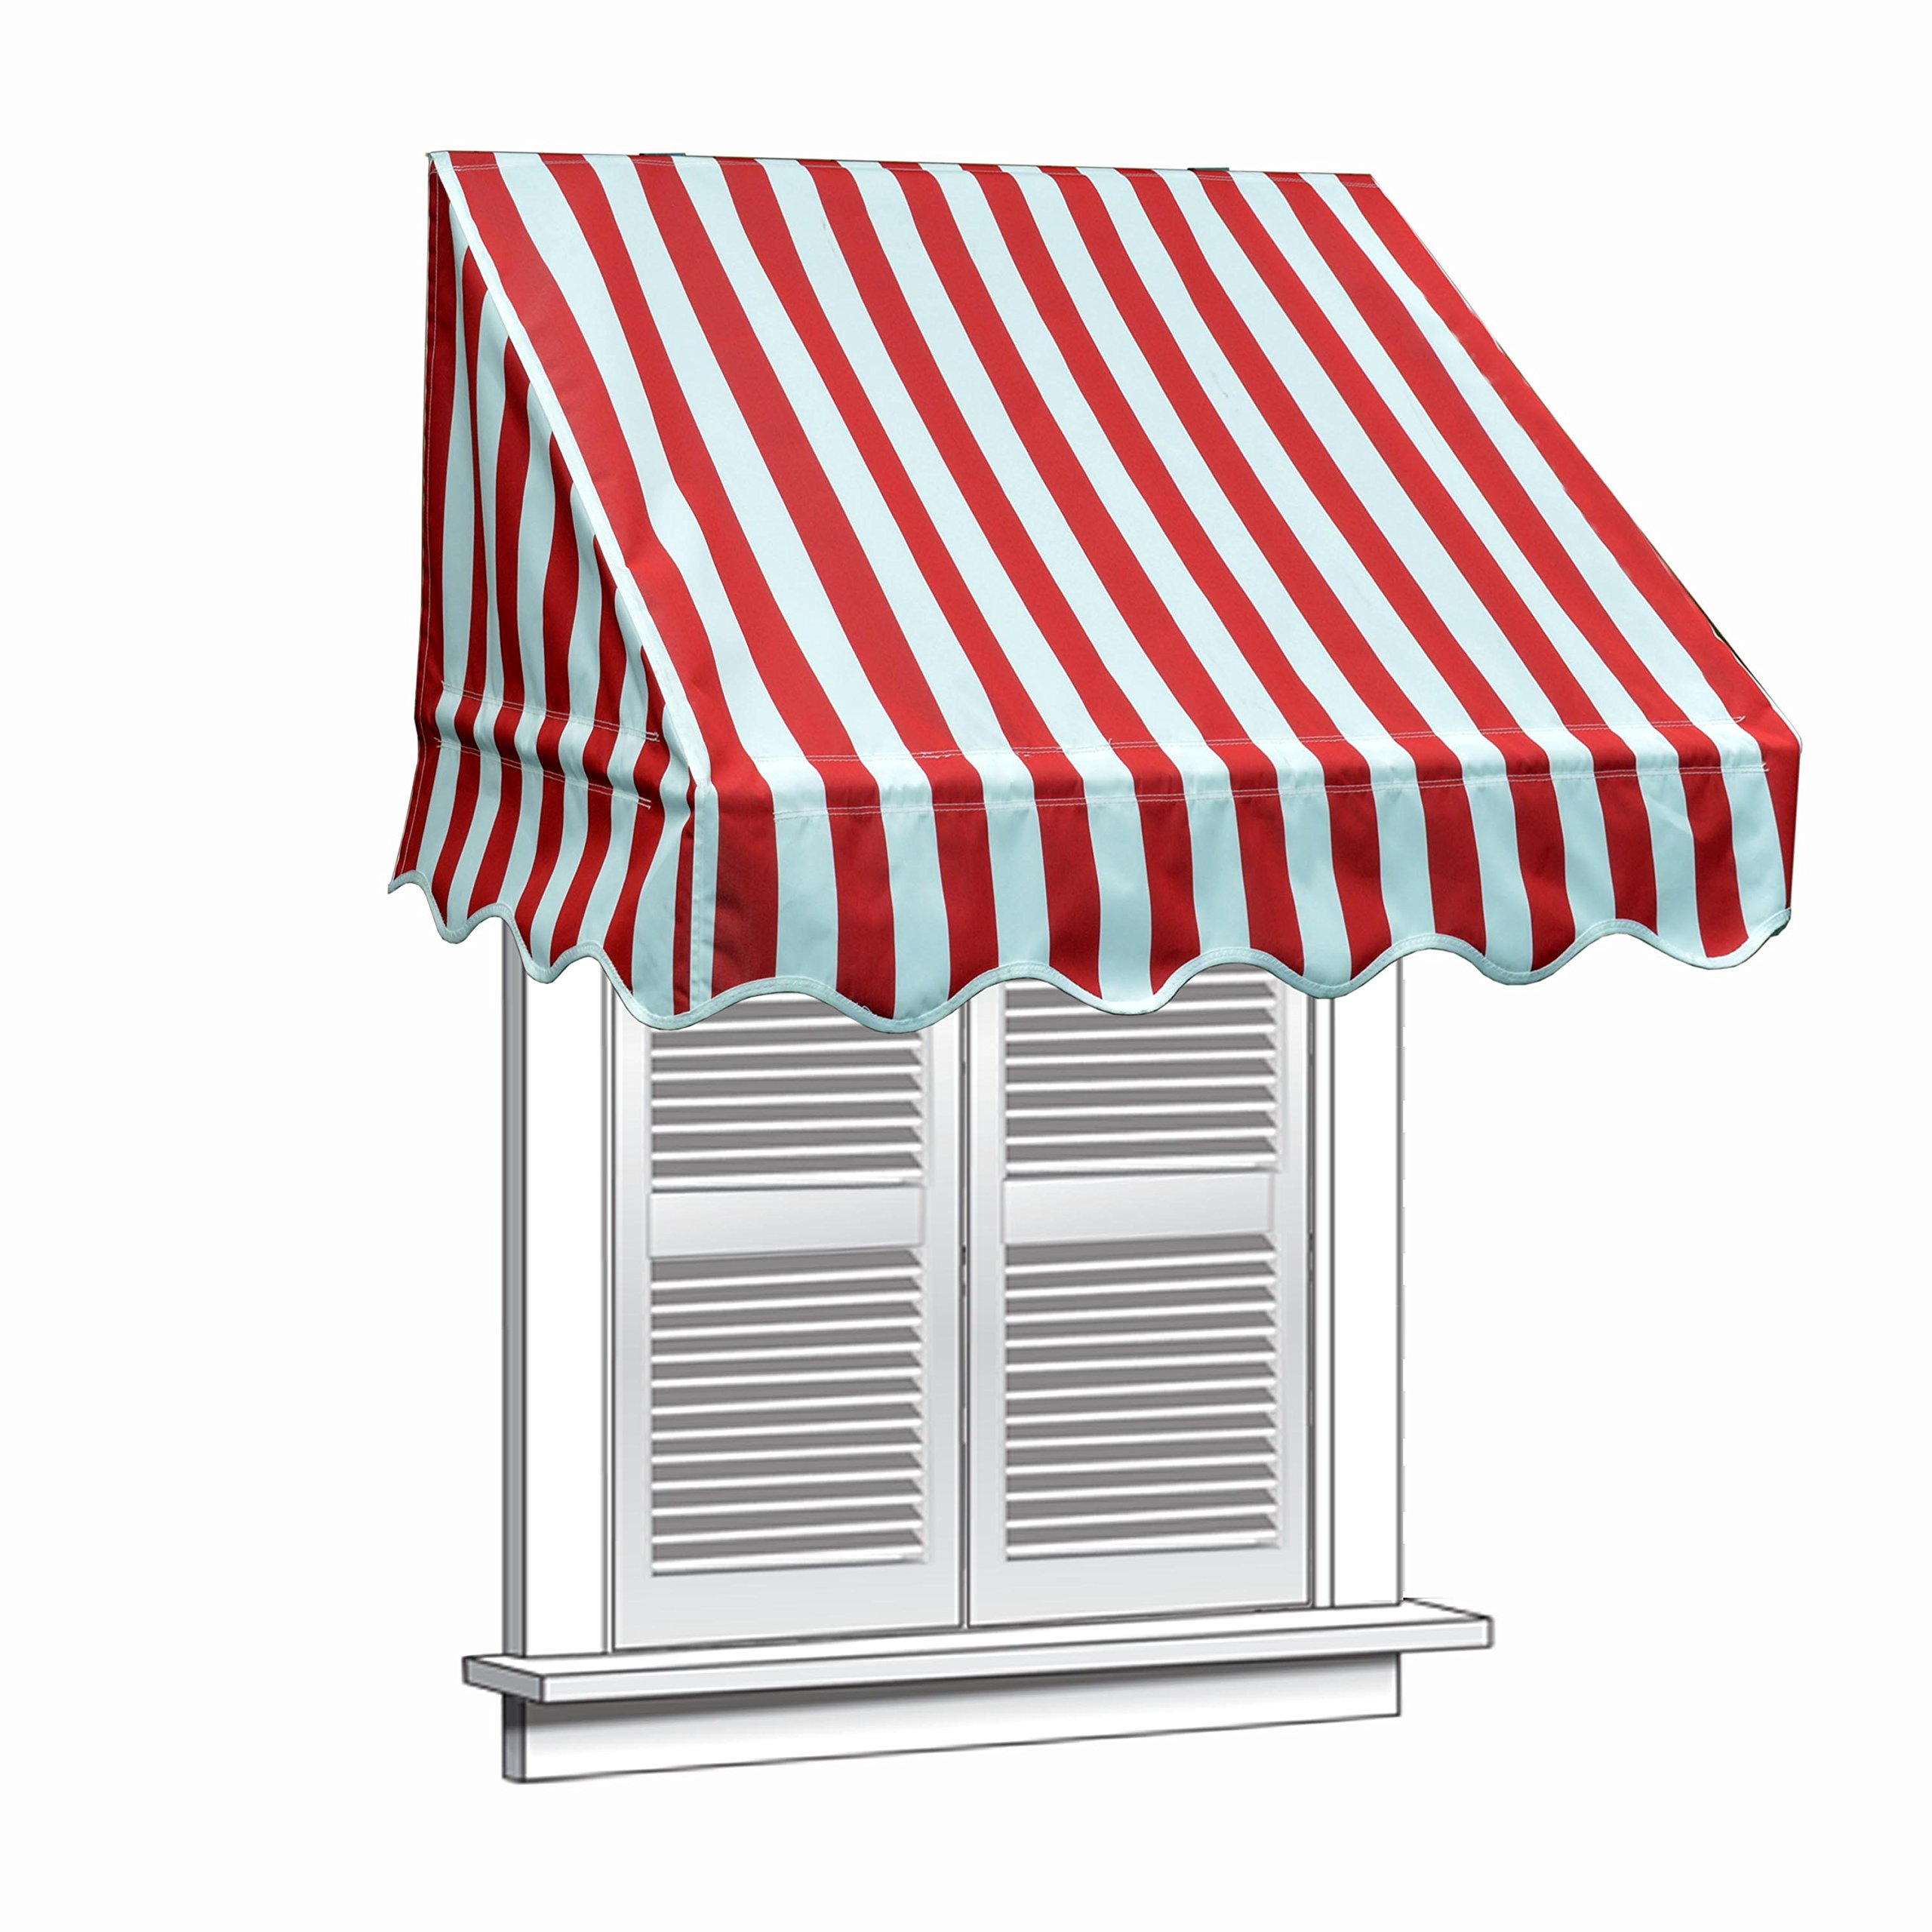 Aleko 8'' X 2'' Window Awning Door Canopy 8-Foot Decorator Awning, Red and White